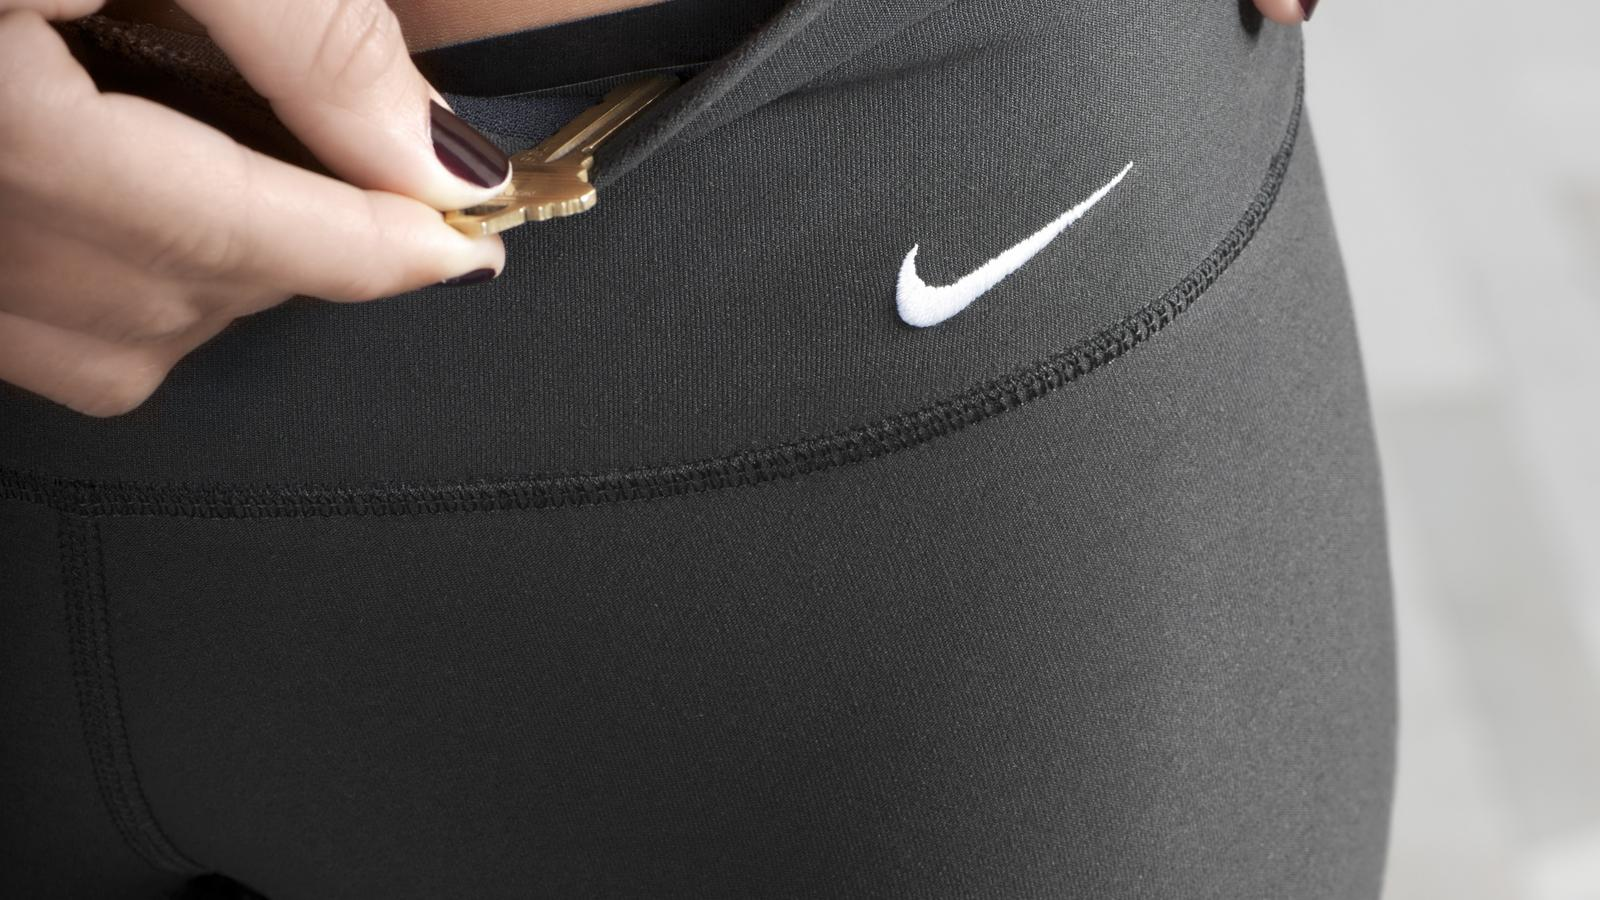 8d014b4aea54c3 Nike_Legend_Pant_Pocket_Key_Detail. Nike_Legend_Pant_Pocket_Key_Detail2.  Nike_Legend_Pant_Recycled_Polyester_Detail. Nike_Legend_Pant_Regular_Full